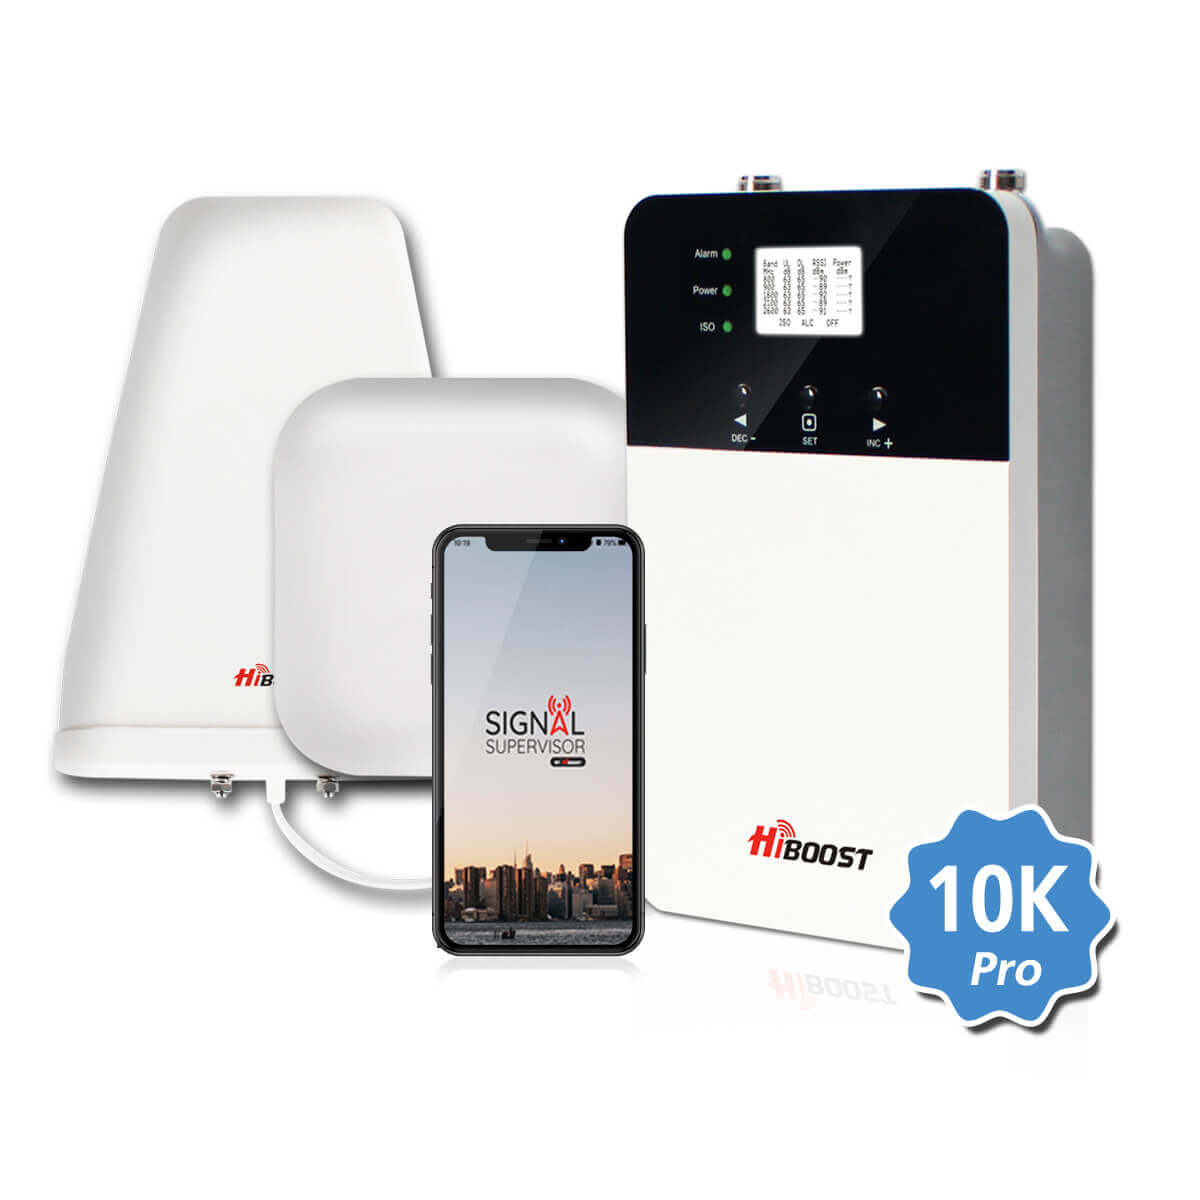 HiBoost-10K-PLUS-PRO-Cell-Phone-Signal-Booster-1